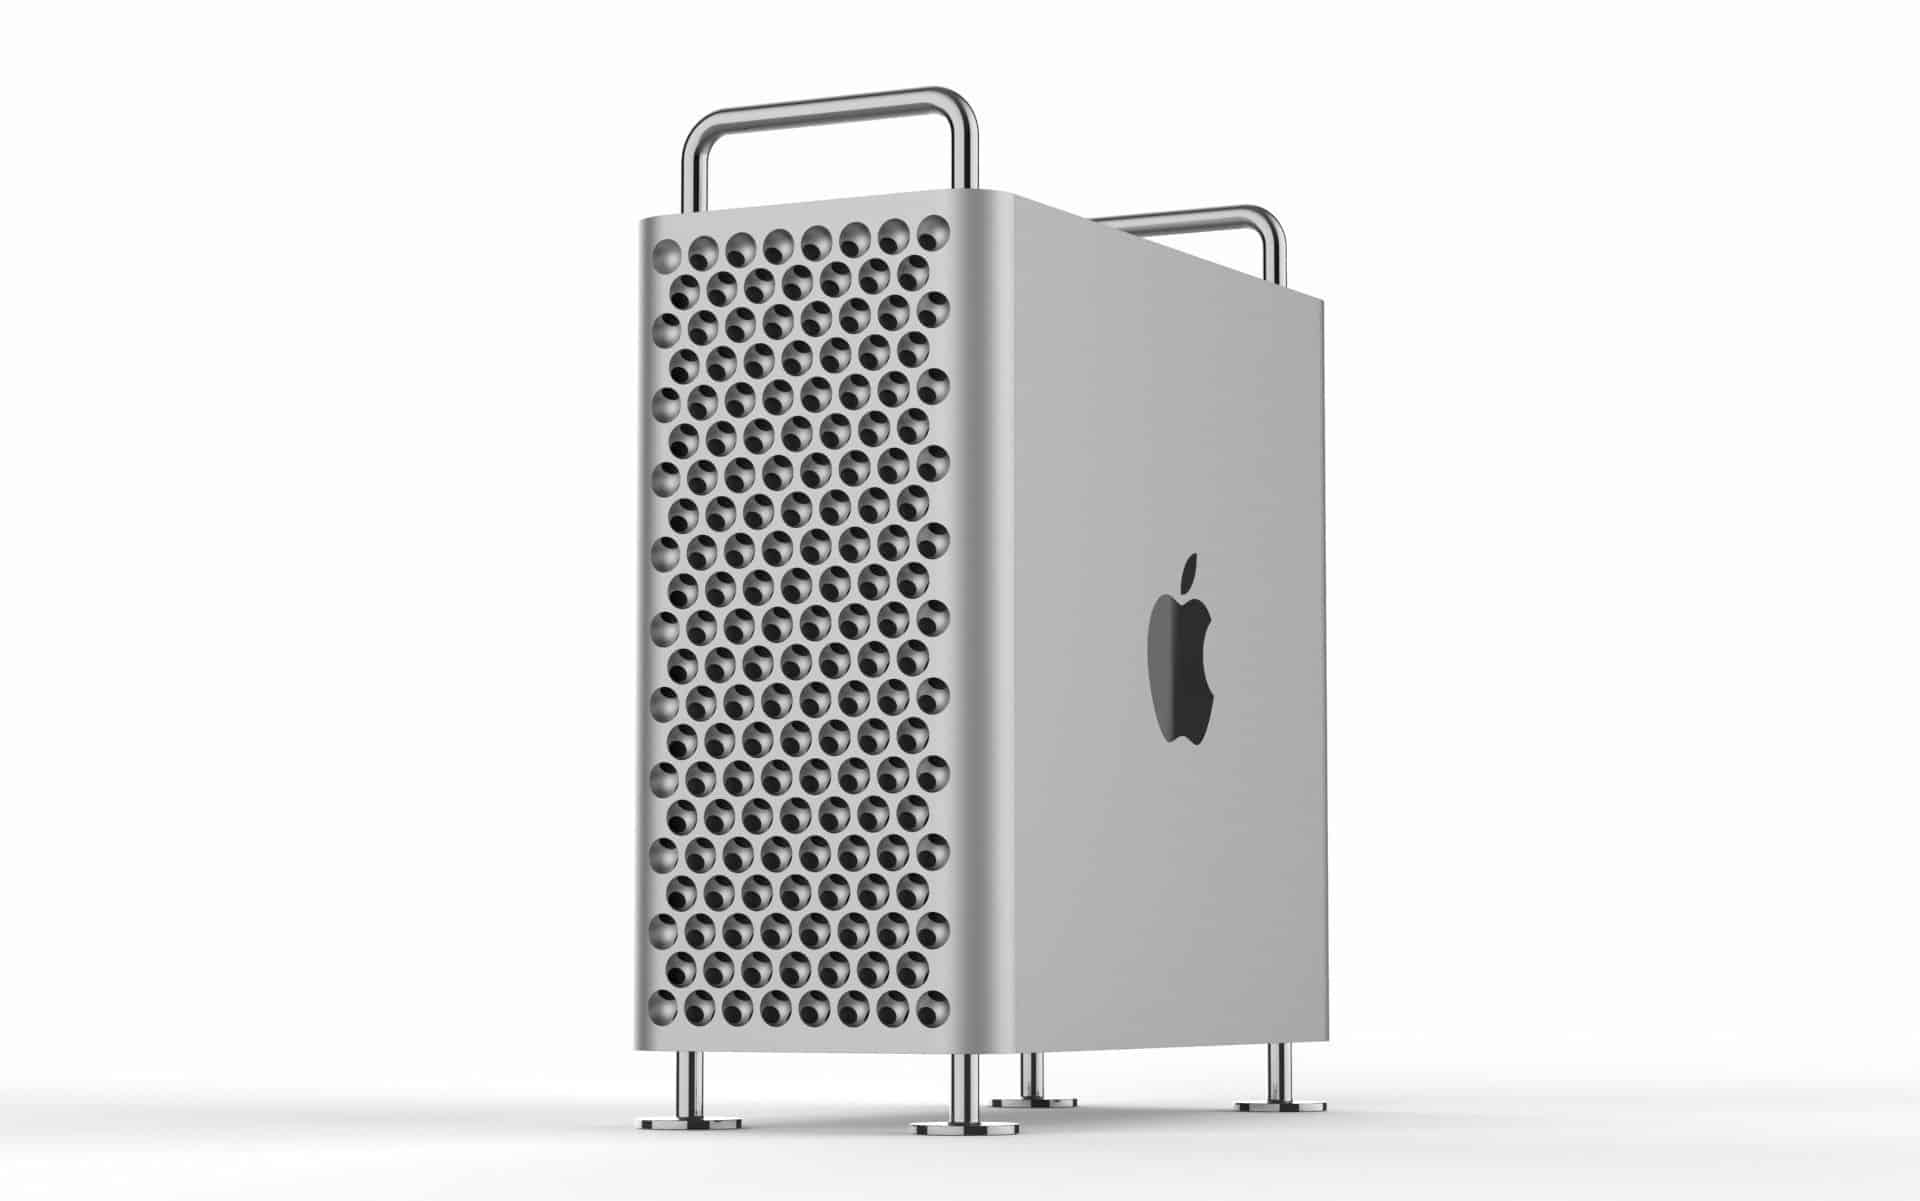 Apple's New Mac Pro gets FCC certification, launching soon?